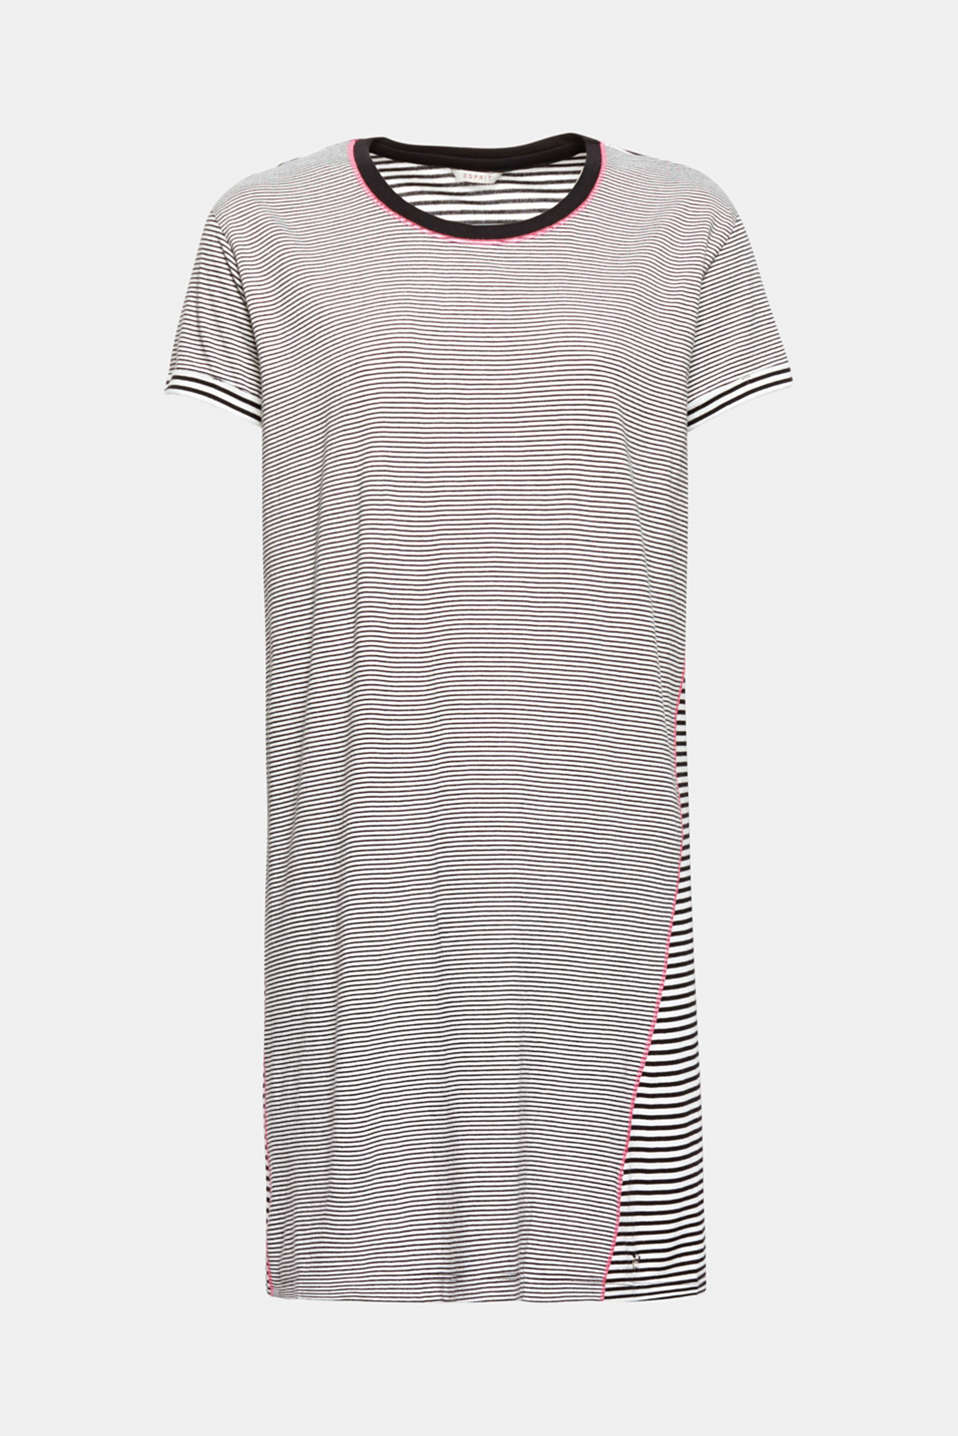 Fine stripes meet up with bold stripes! Bright stitching gives this nightshirt its relaxed flair in soft cotton jersey.